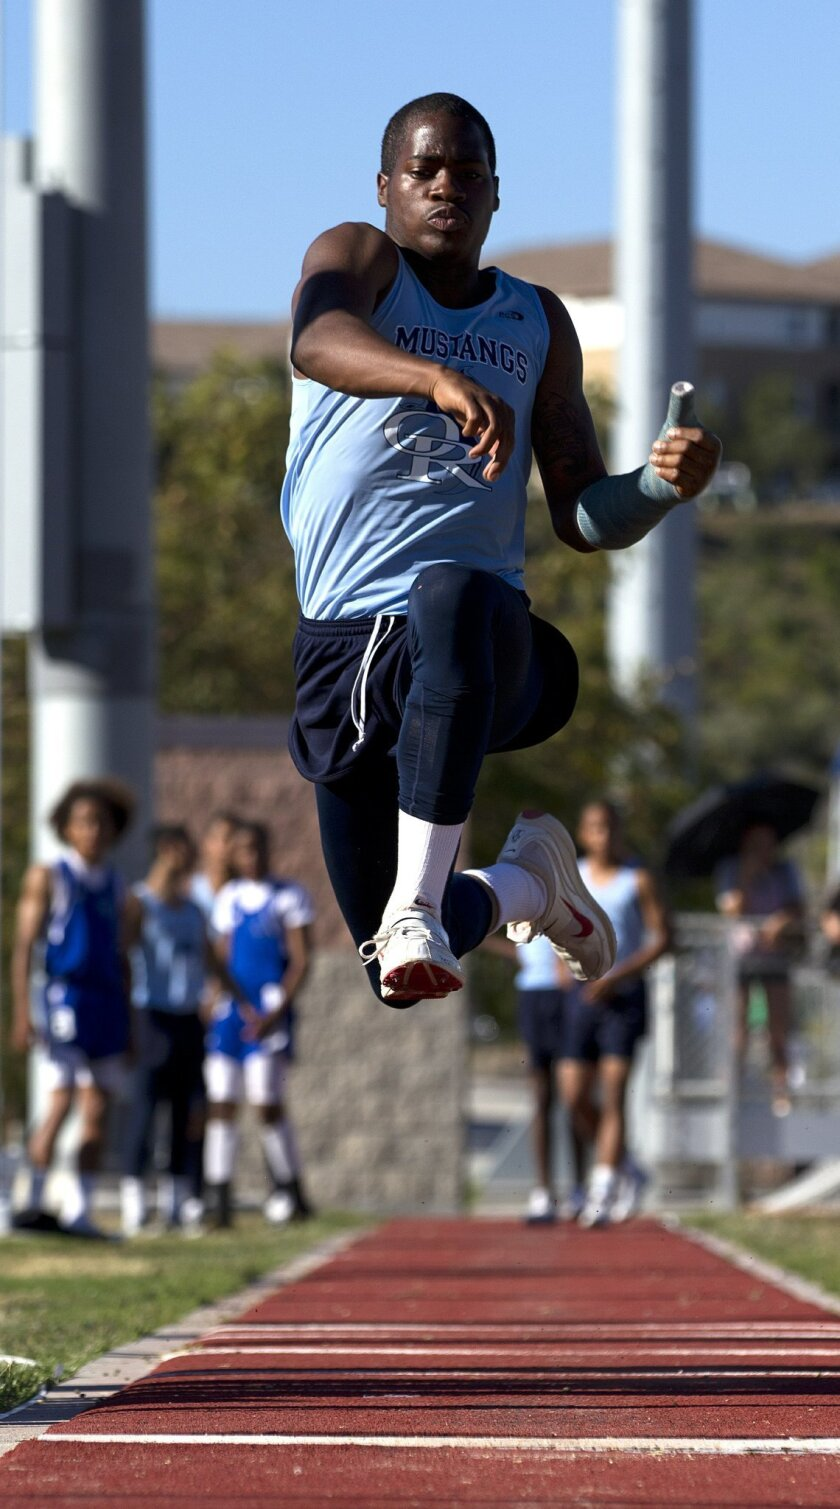 Otay Ranch senior Marques Roberts aims to win his division at the 2011 USA Junior Outdoor Track & Field Championships in June.